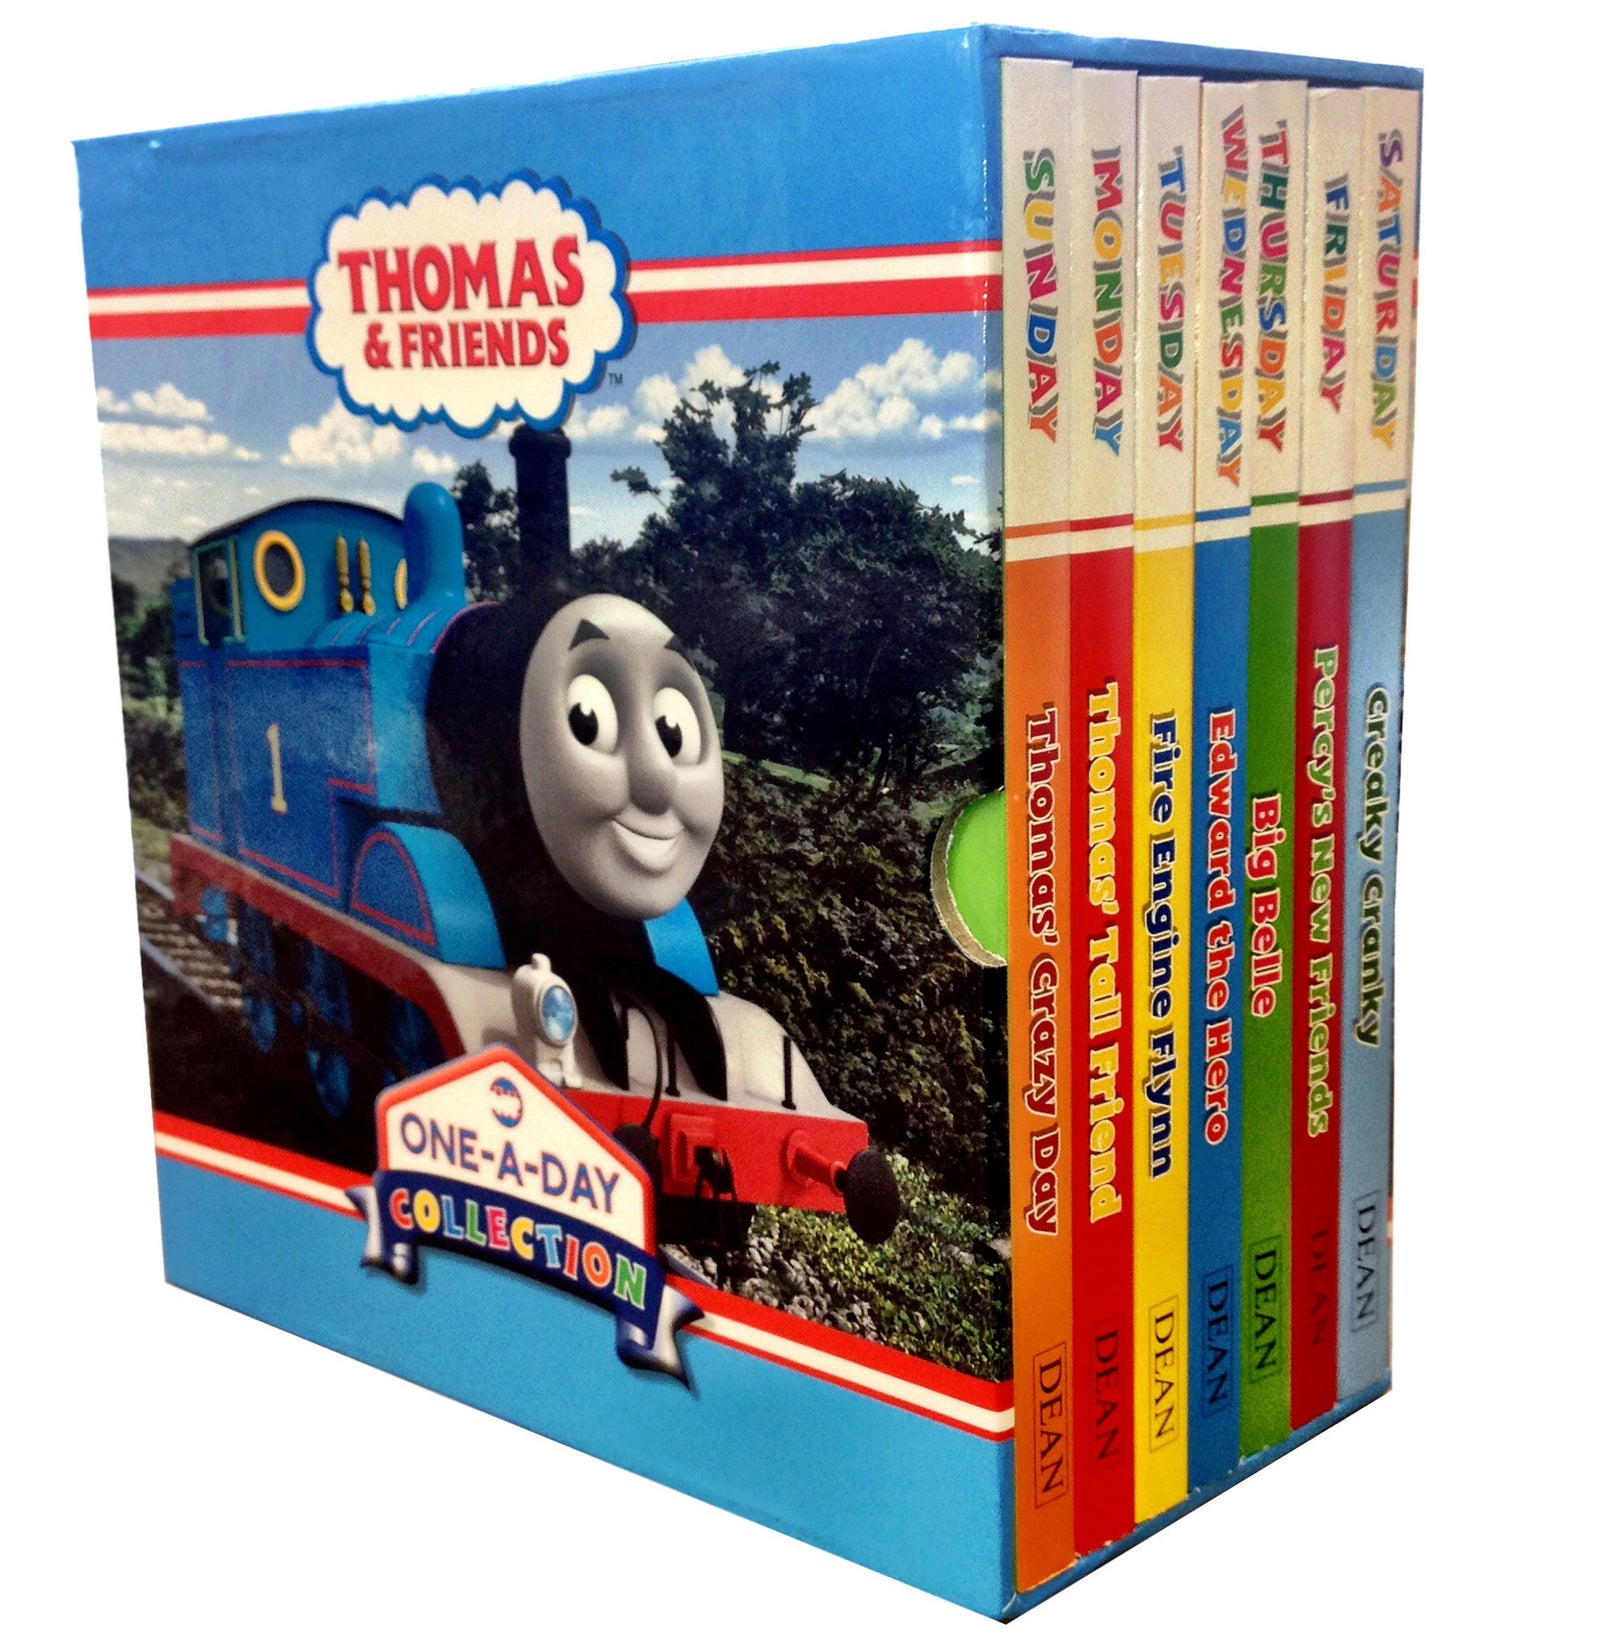 Thomas & Friends Children's Story 7 Books Collection